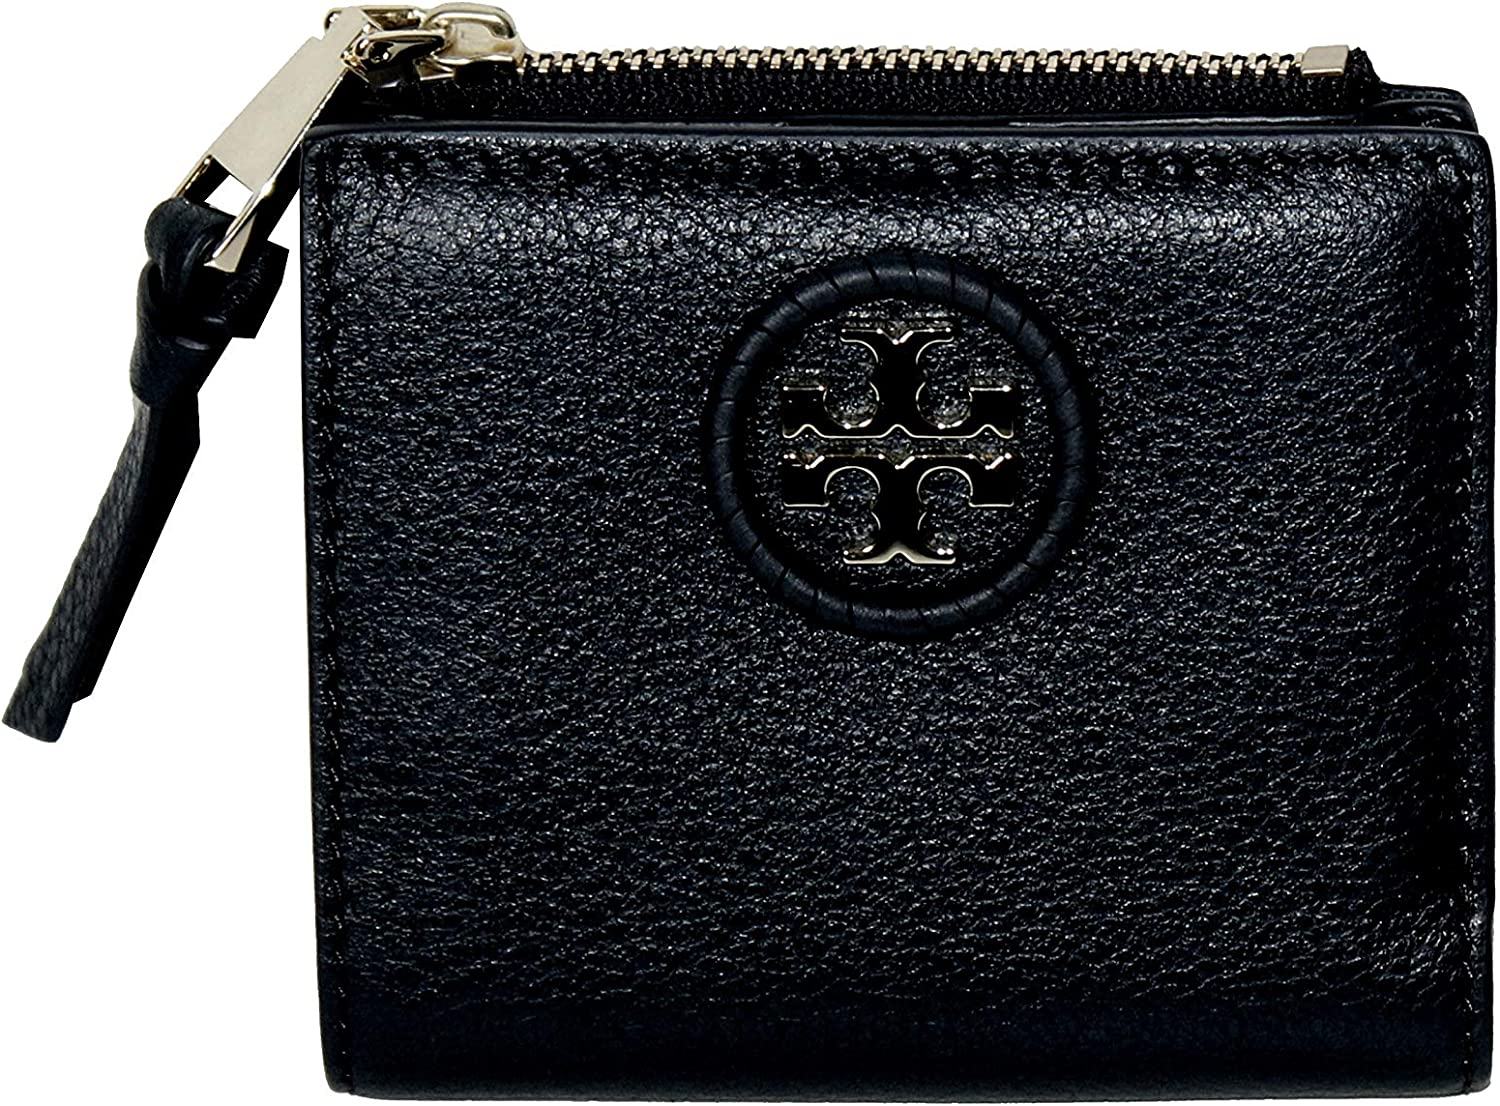 Tory Burch Women's Whipstitch Logo Mini Wallet 48364